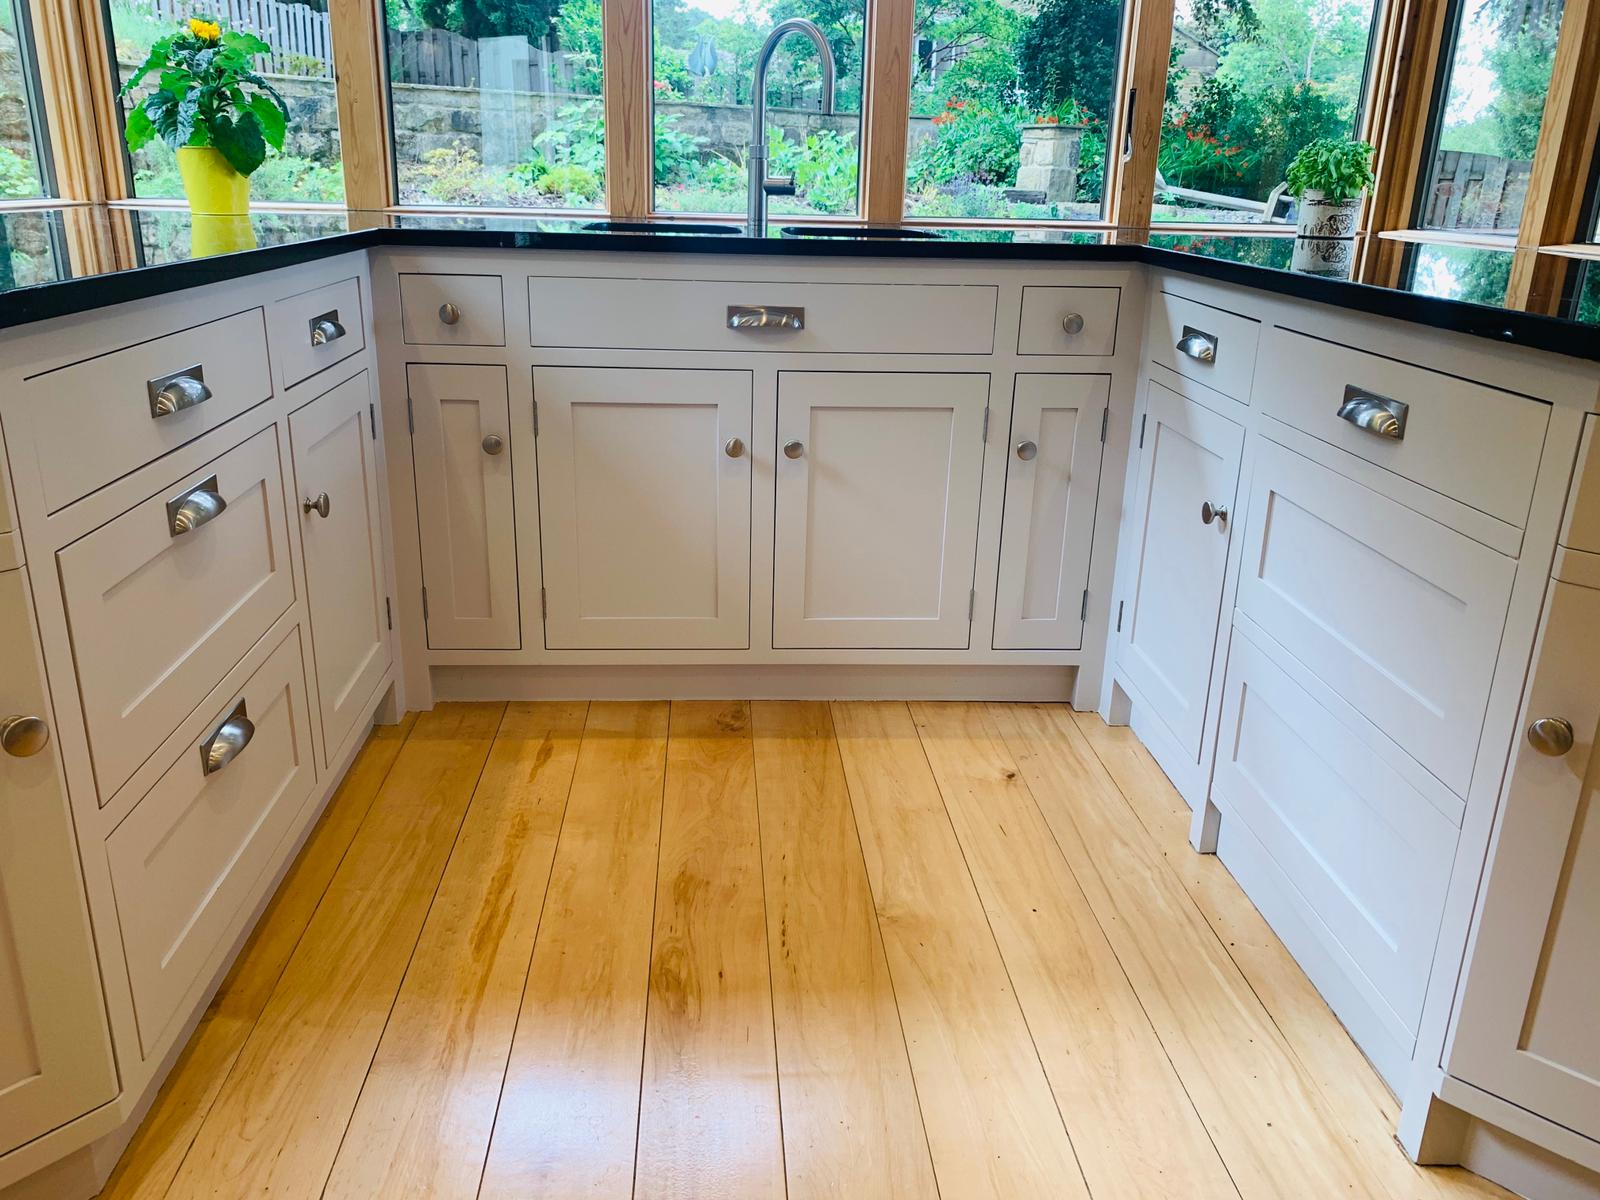 Hand painted kitchen cabinets in Leeds painted by gareth thompson decorator